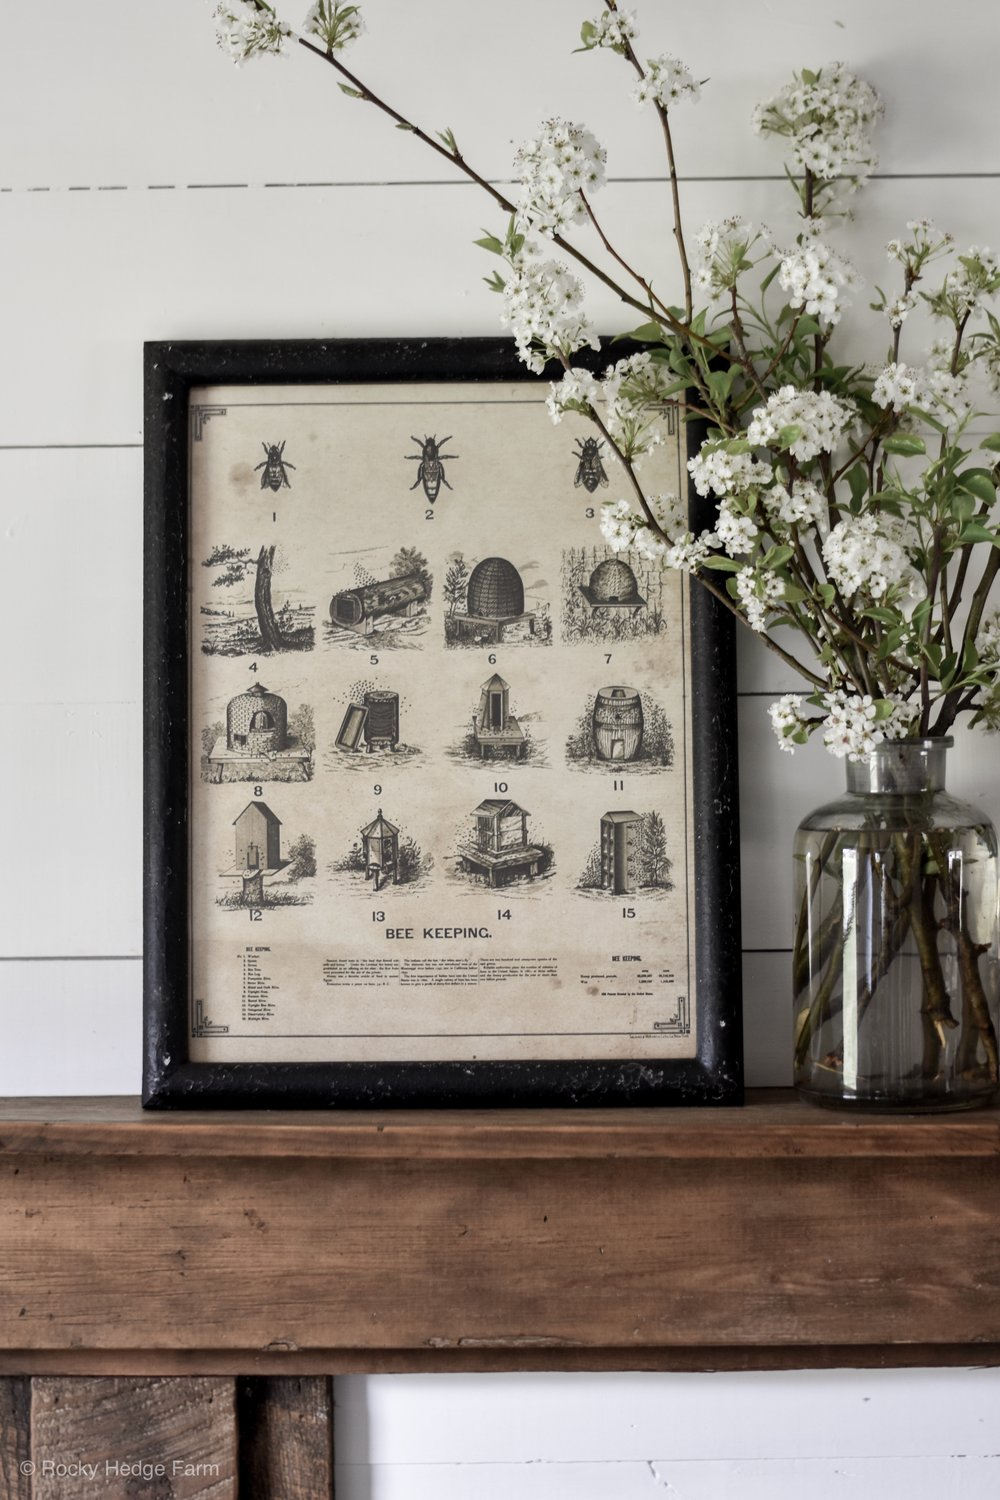 Simple Vintage Style Bee Keeping Print - Rustic Farmhouse Spring Mantle | Rocky Hedge Farm